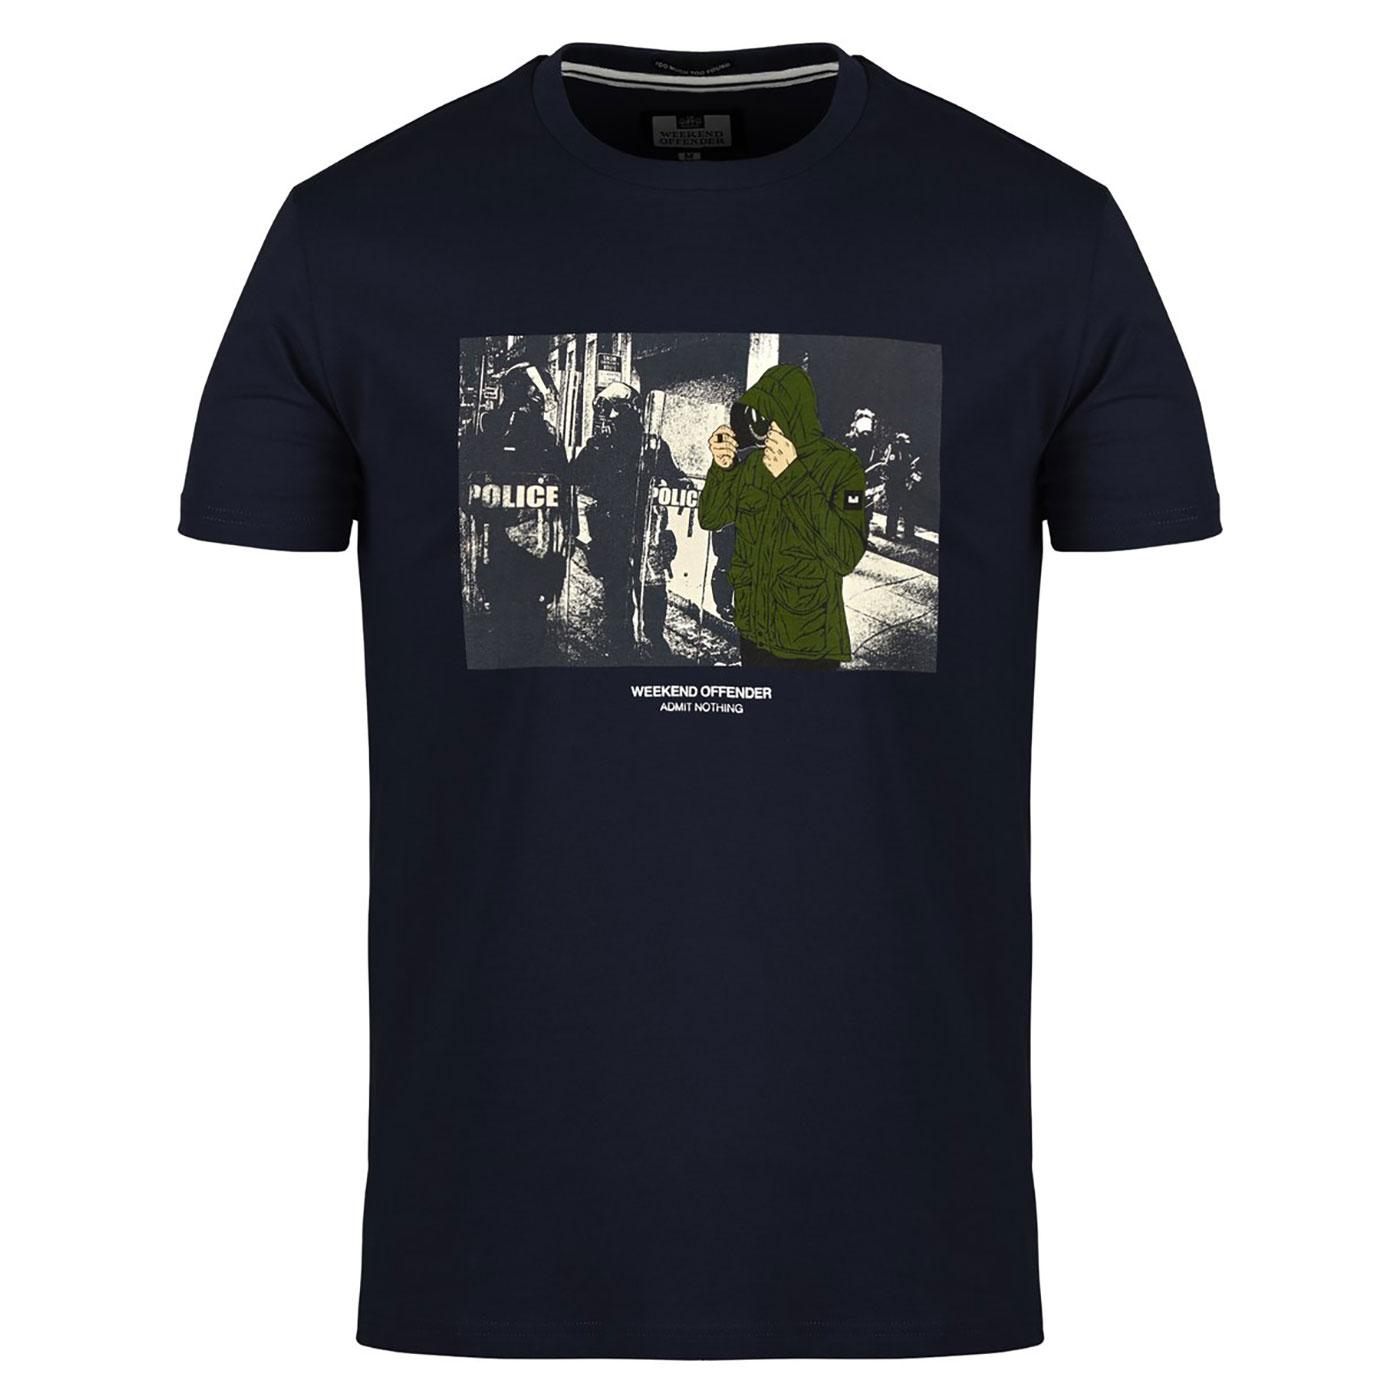 Smiley WEEKEND OFFENDER Casuals Mask Print T-Shirt